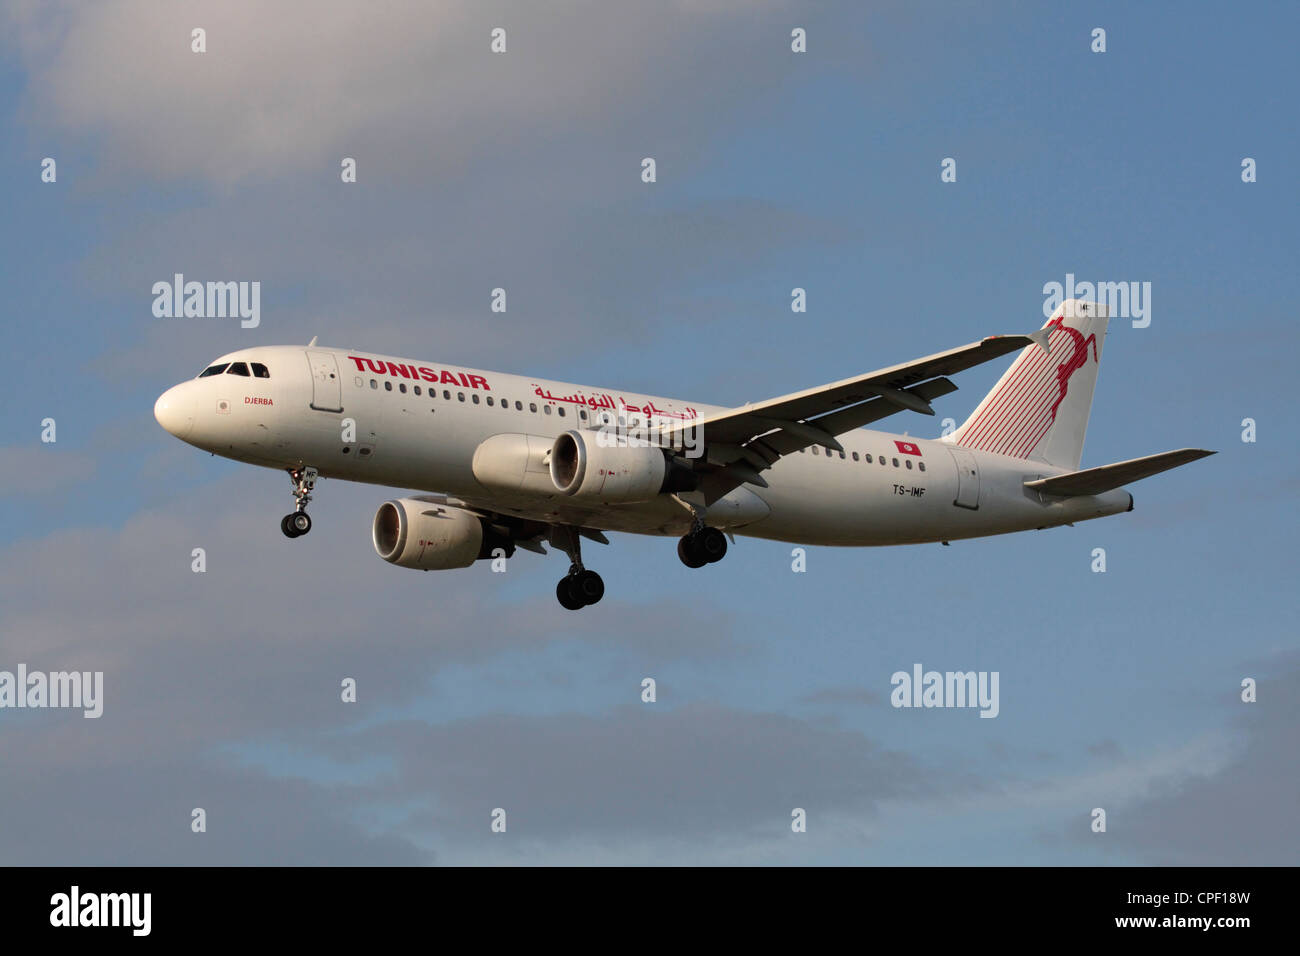 Tunisair Airbus A320 commercial airliner flying on approach - Stock Image